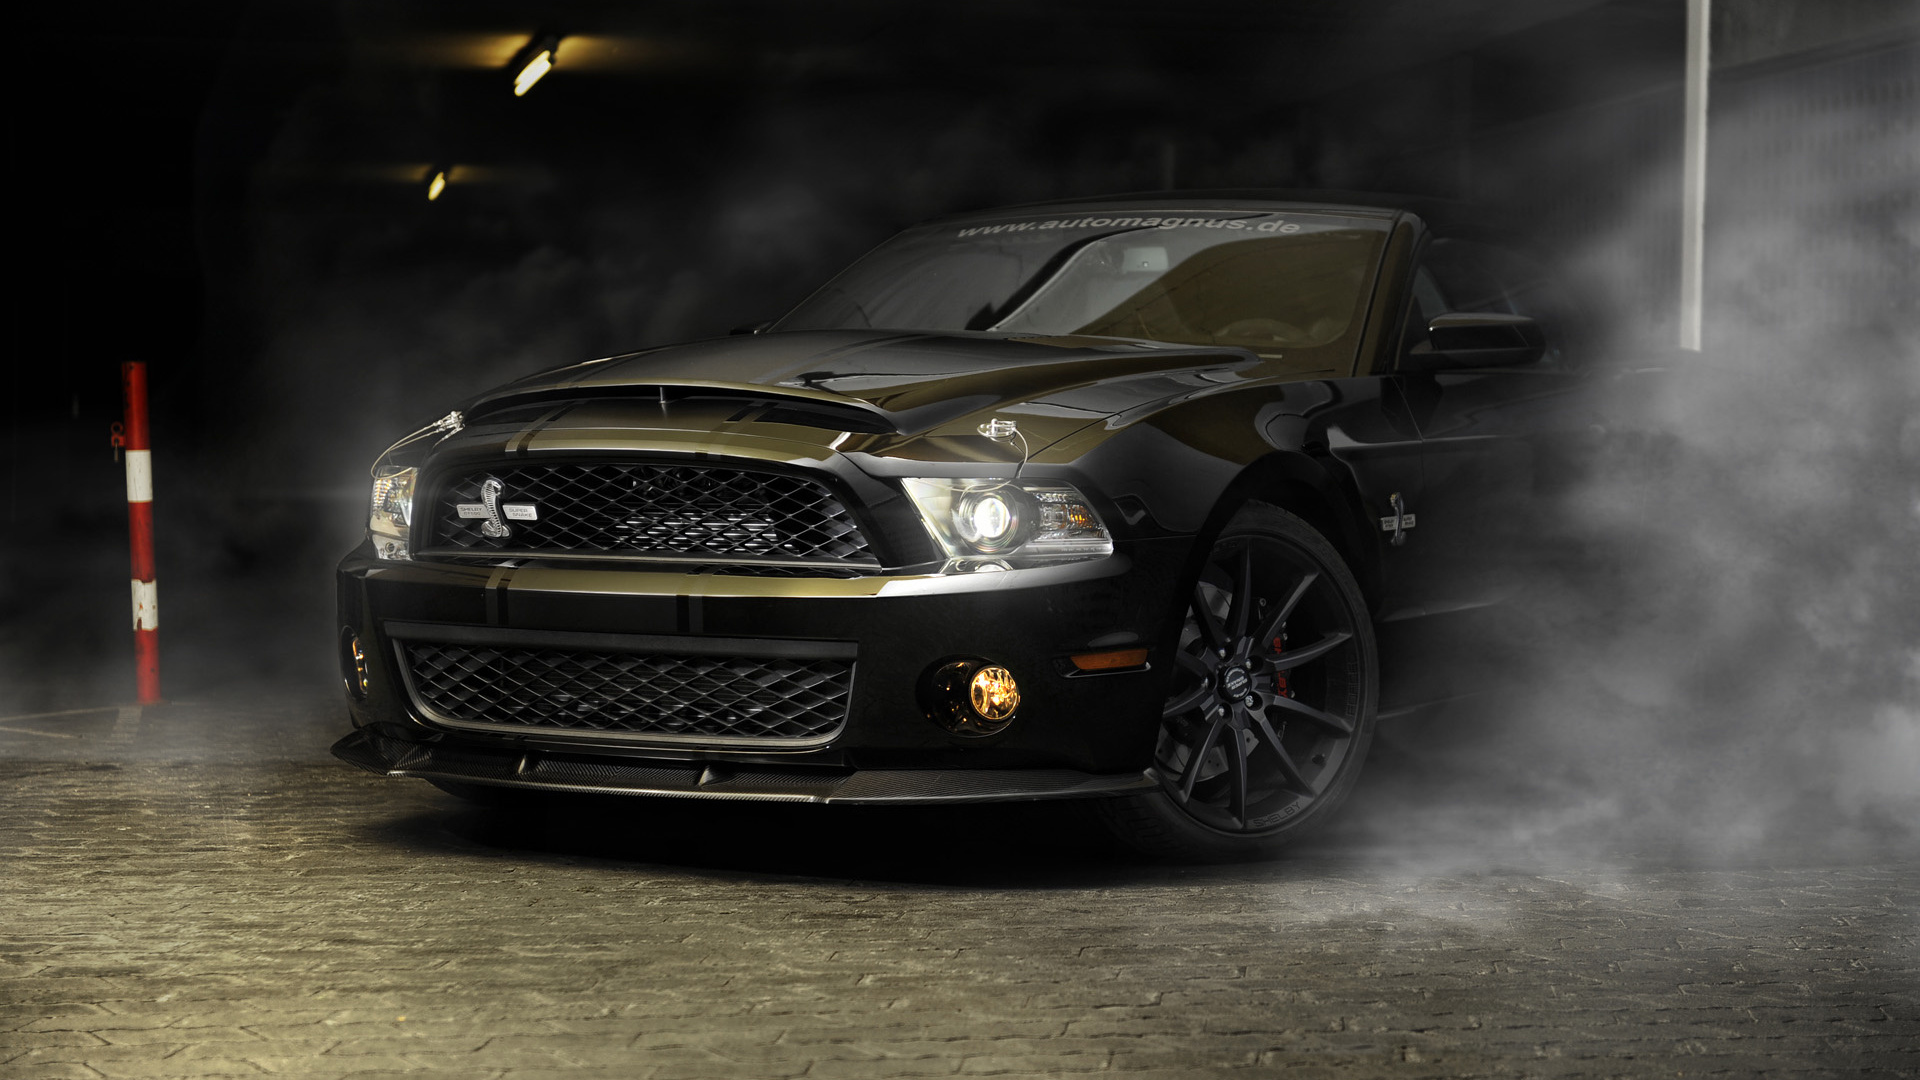 1920x1080 - Ford Mustang GT500 Wallpapers 15